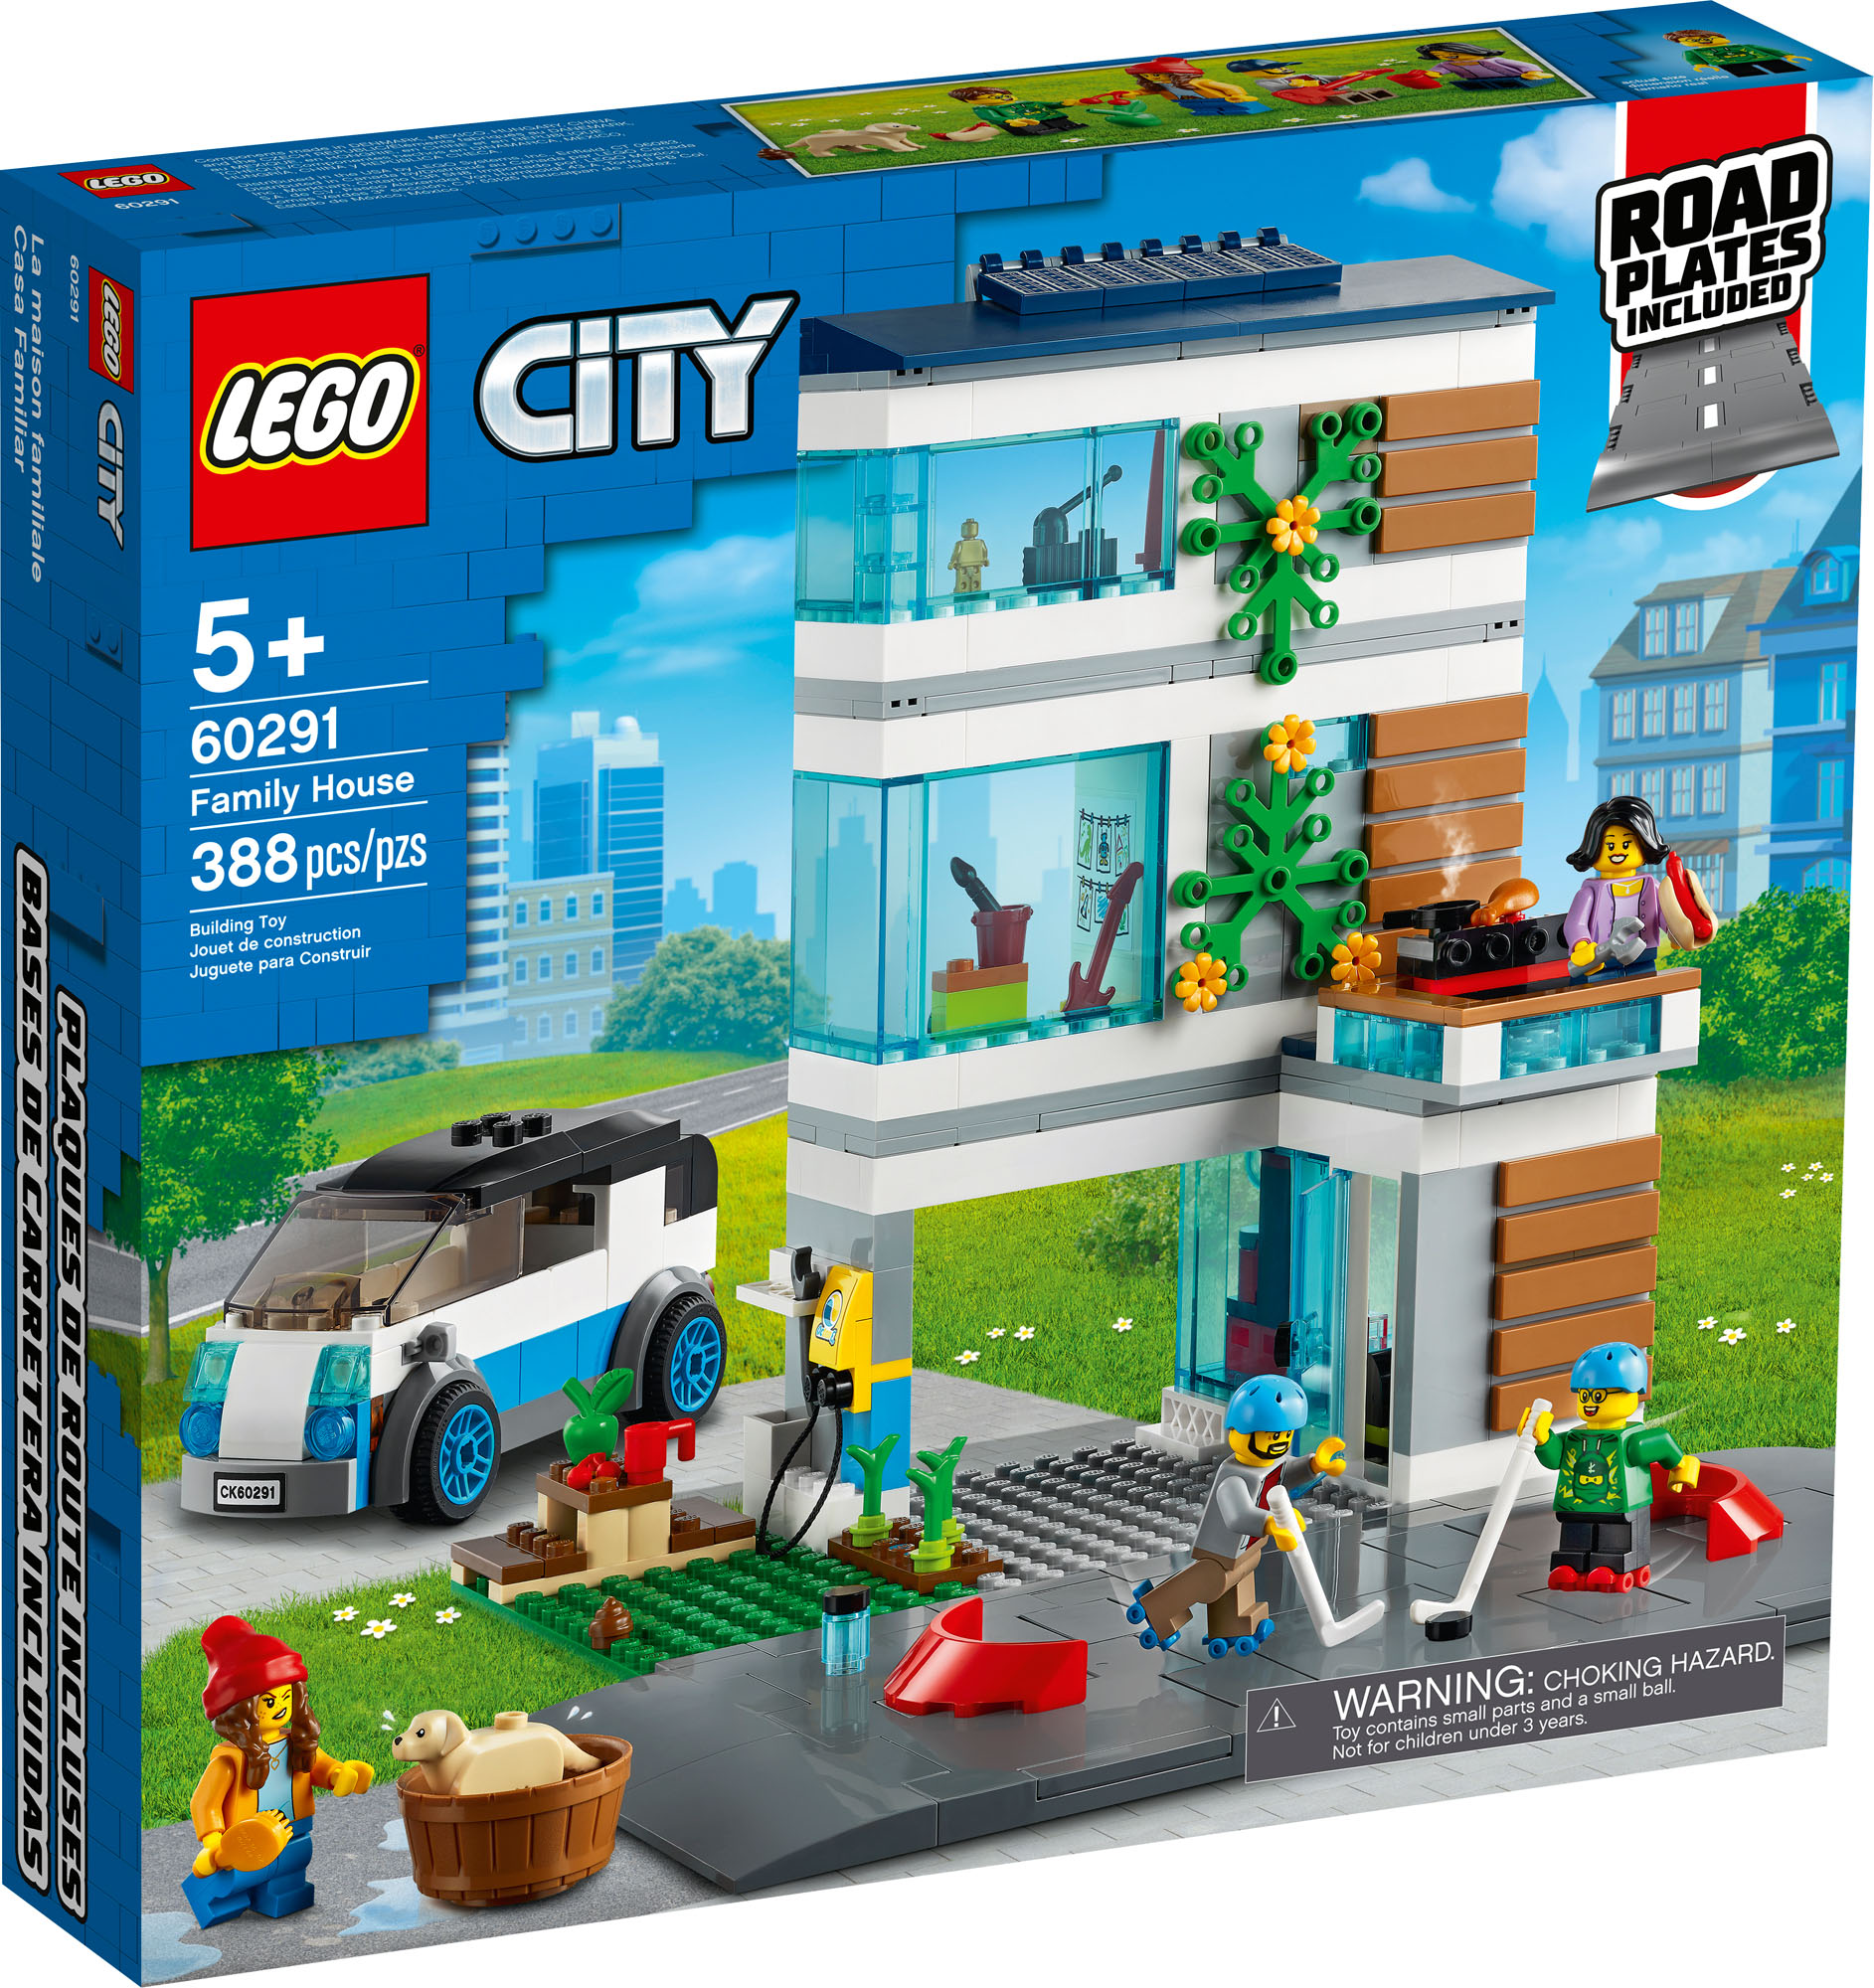 New! 60291 LEGO City Modern Family House with 4 ...